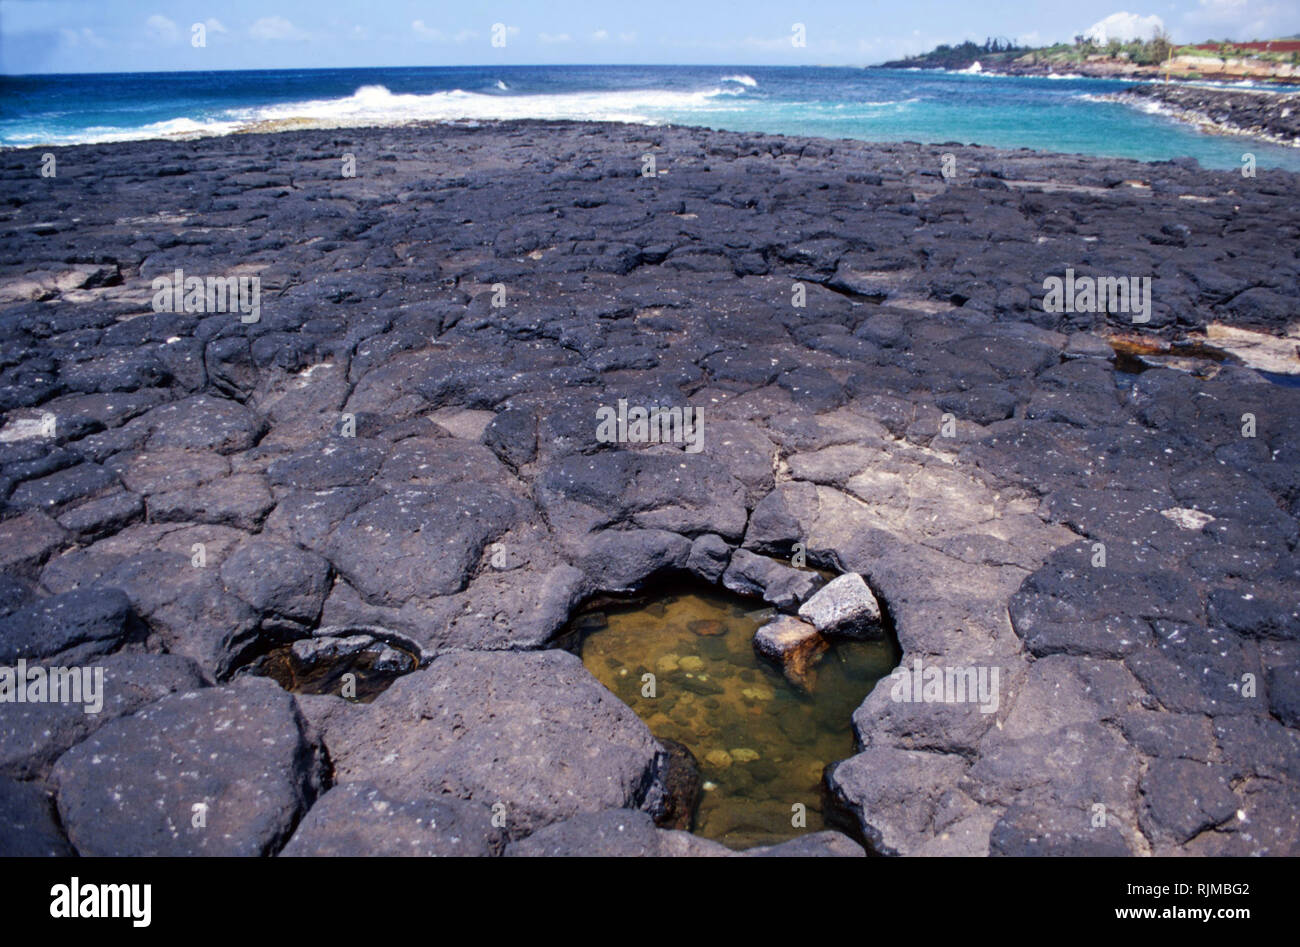 Pillow lava from Kilauea volcanic eruptions,Hawaii Stock Photo